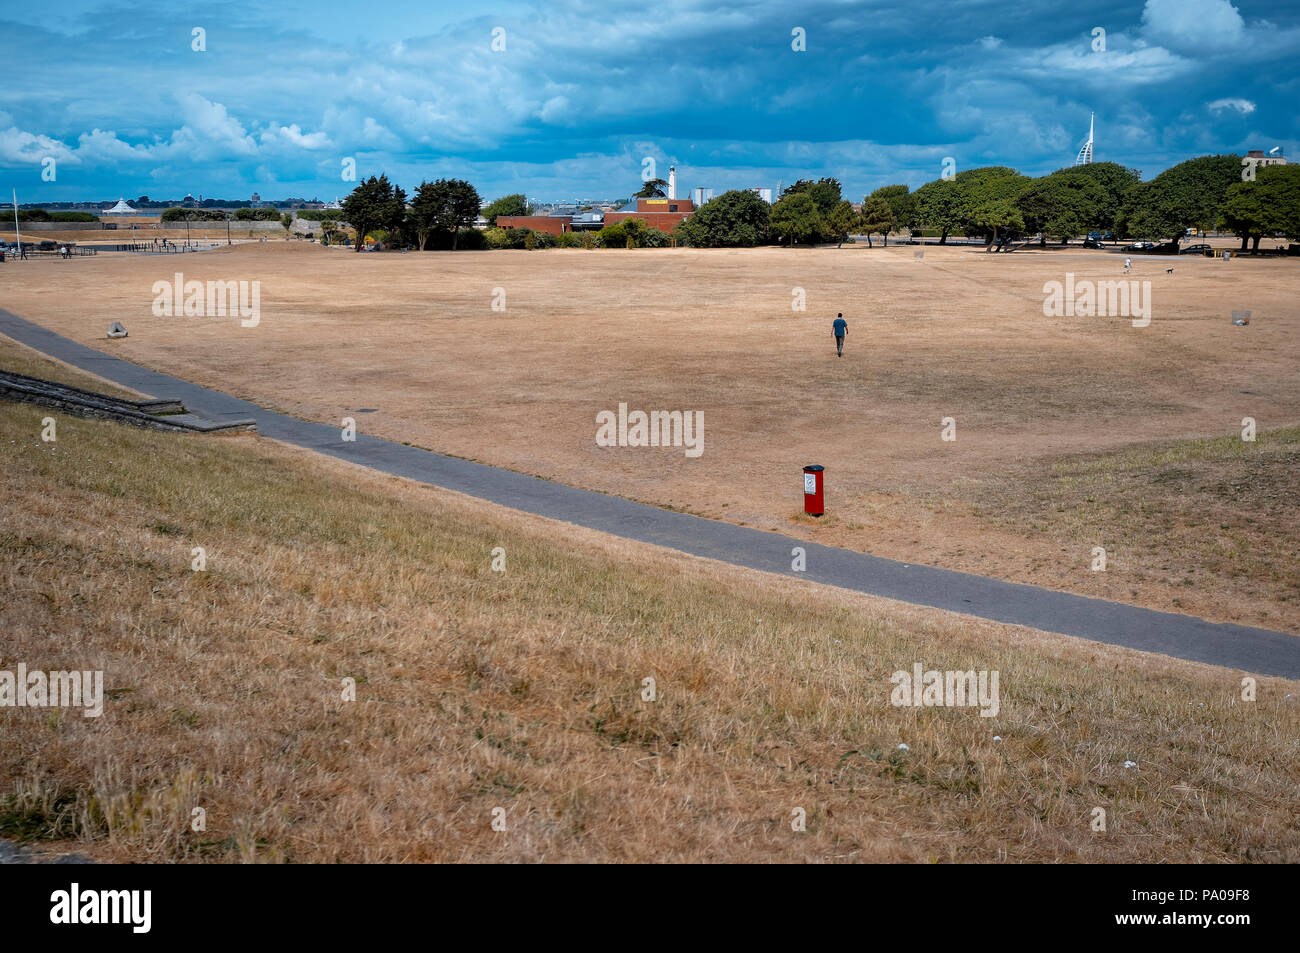 Dry brown grass field on Southsea Common public park due to the extreme hot weather this year. Stock Photo